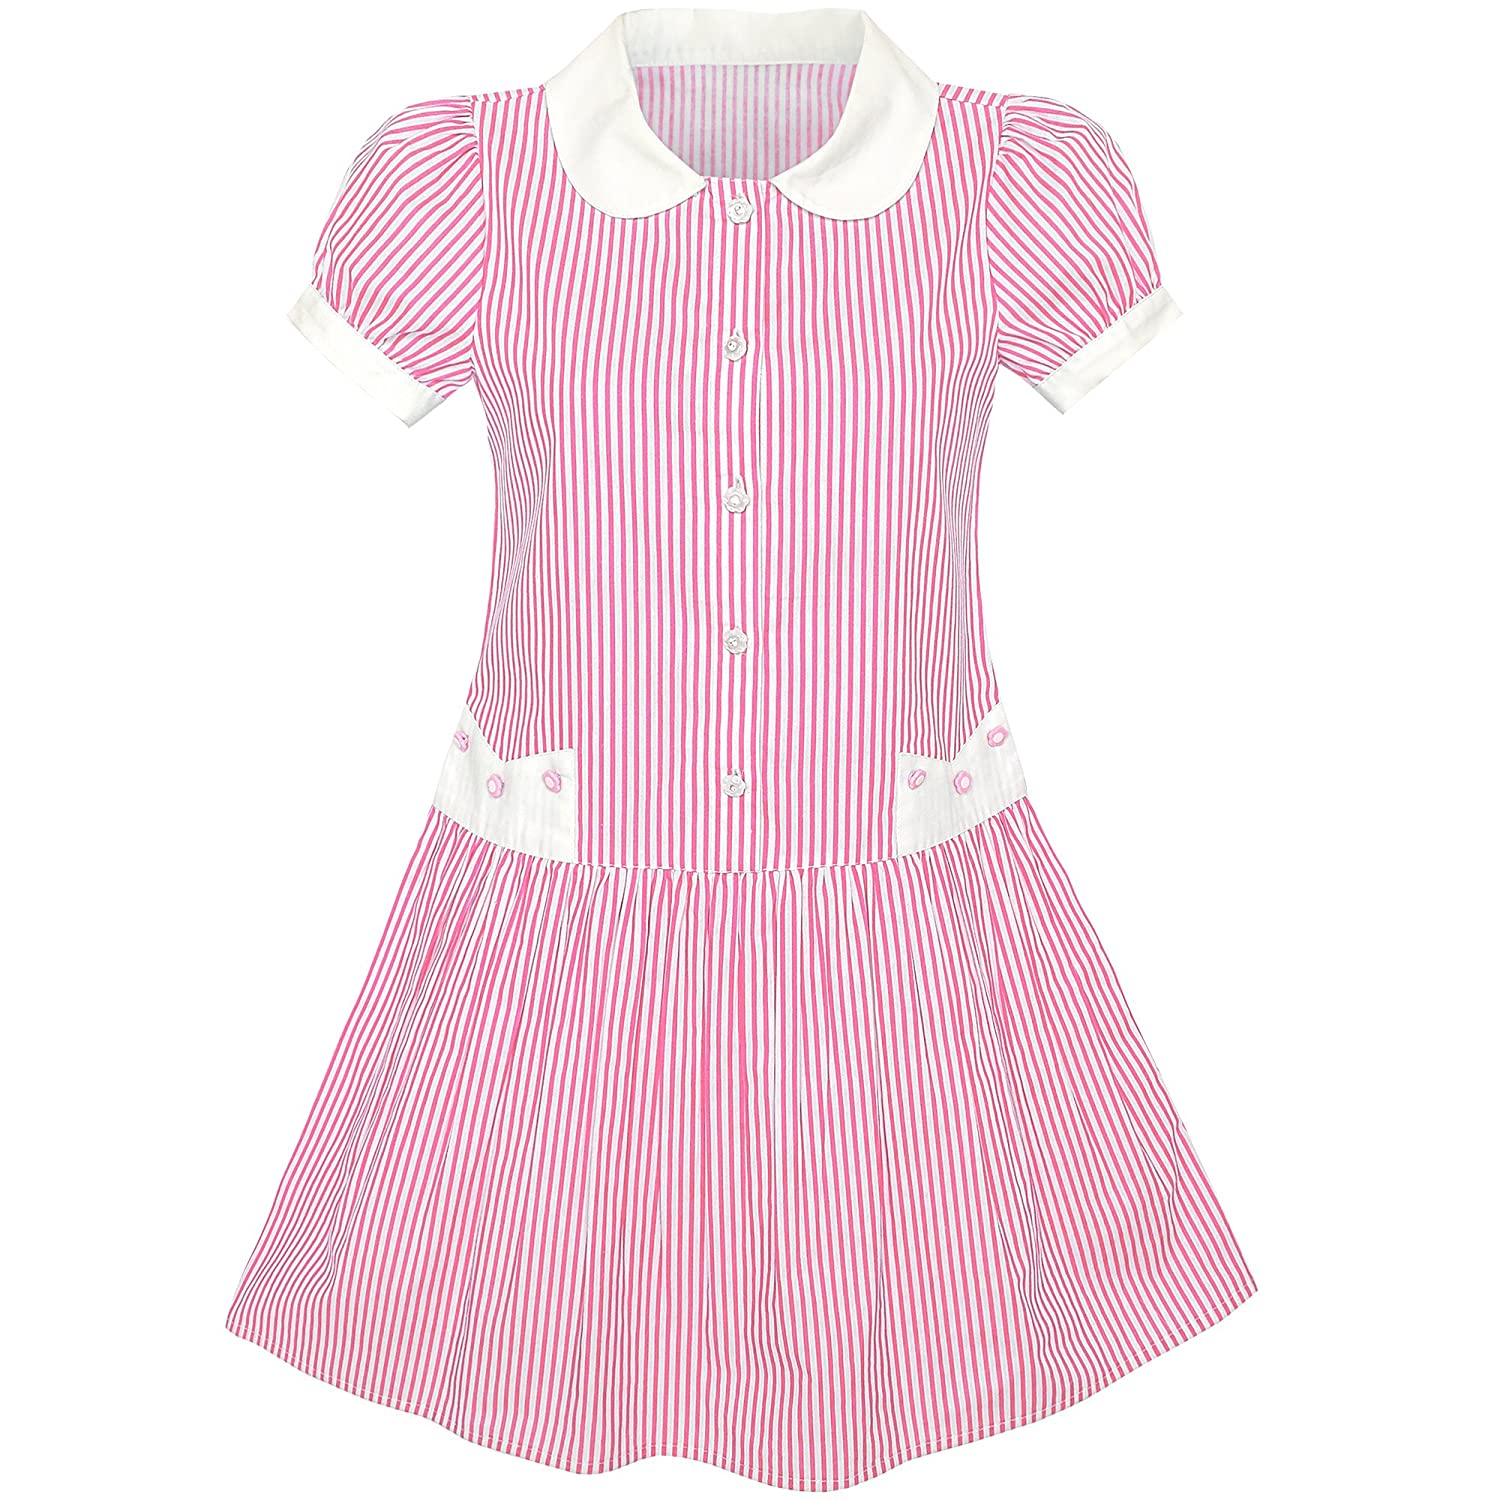 Sunny Fashion Girls Dress Blue White Stripe Collar School Short Sleeve Size 5-12